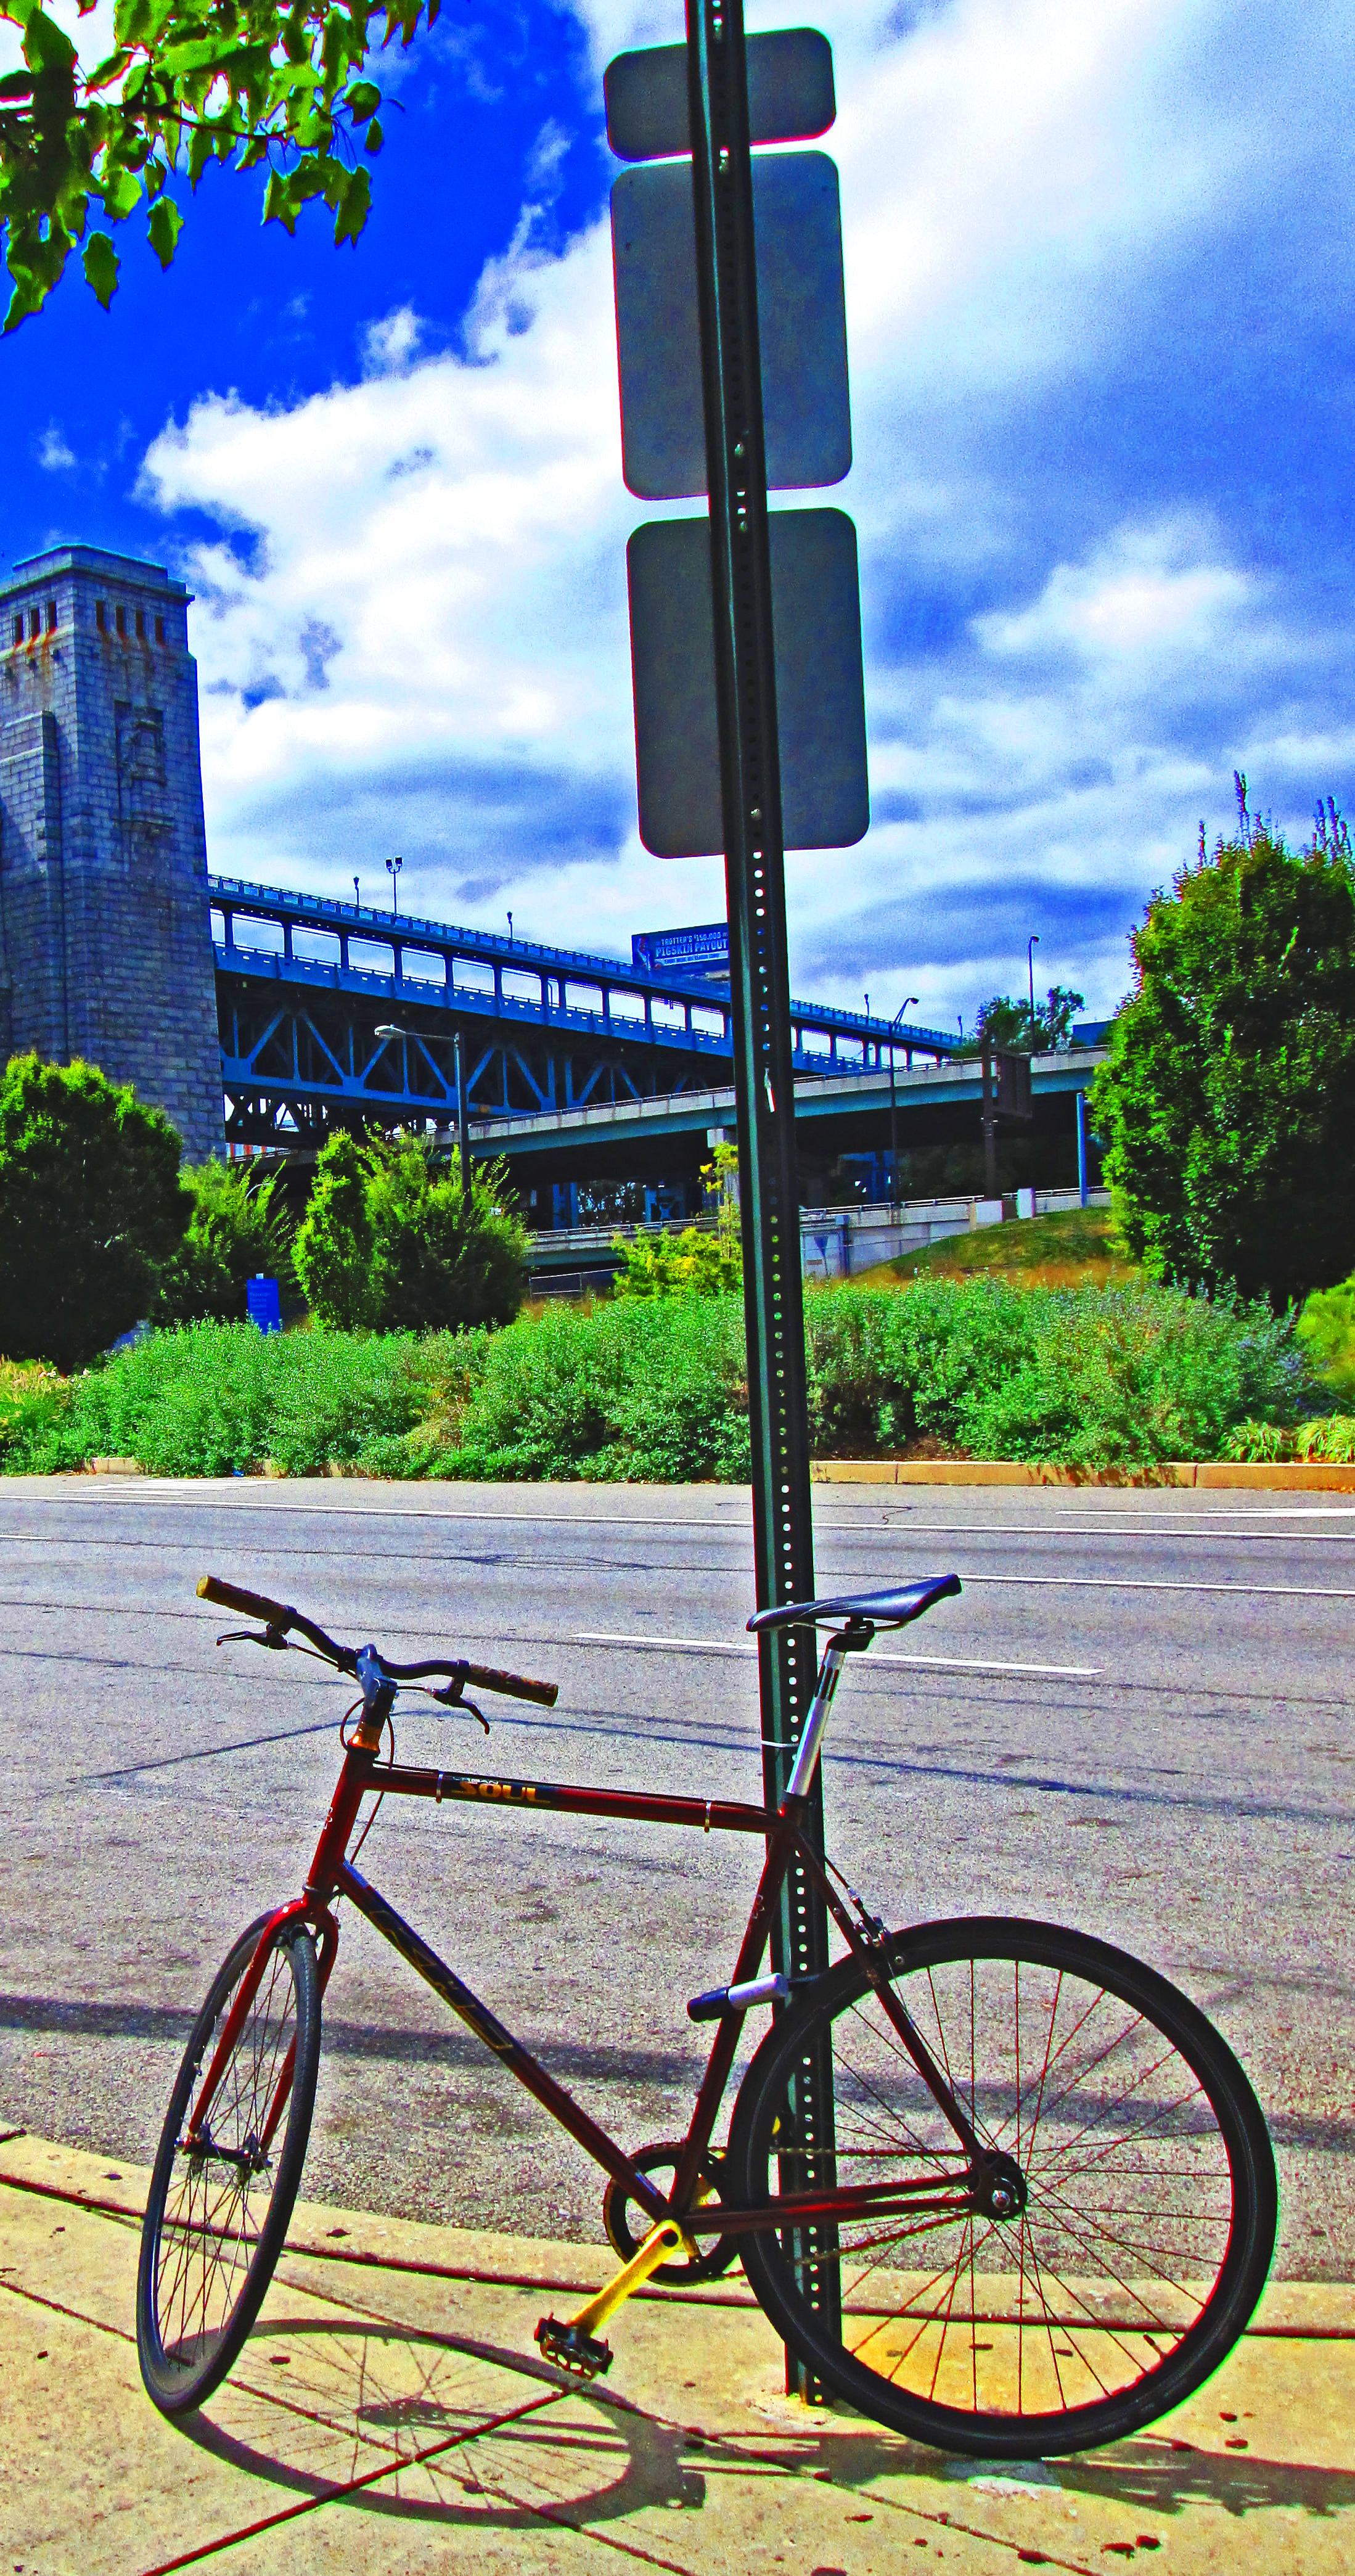 KHS Urban Soul Bike Near Ben Franklin Bridge